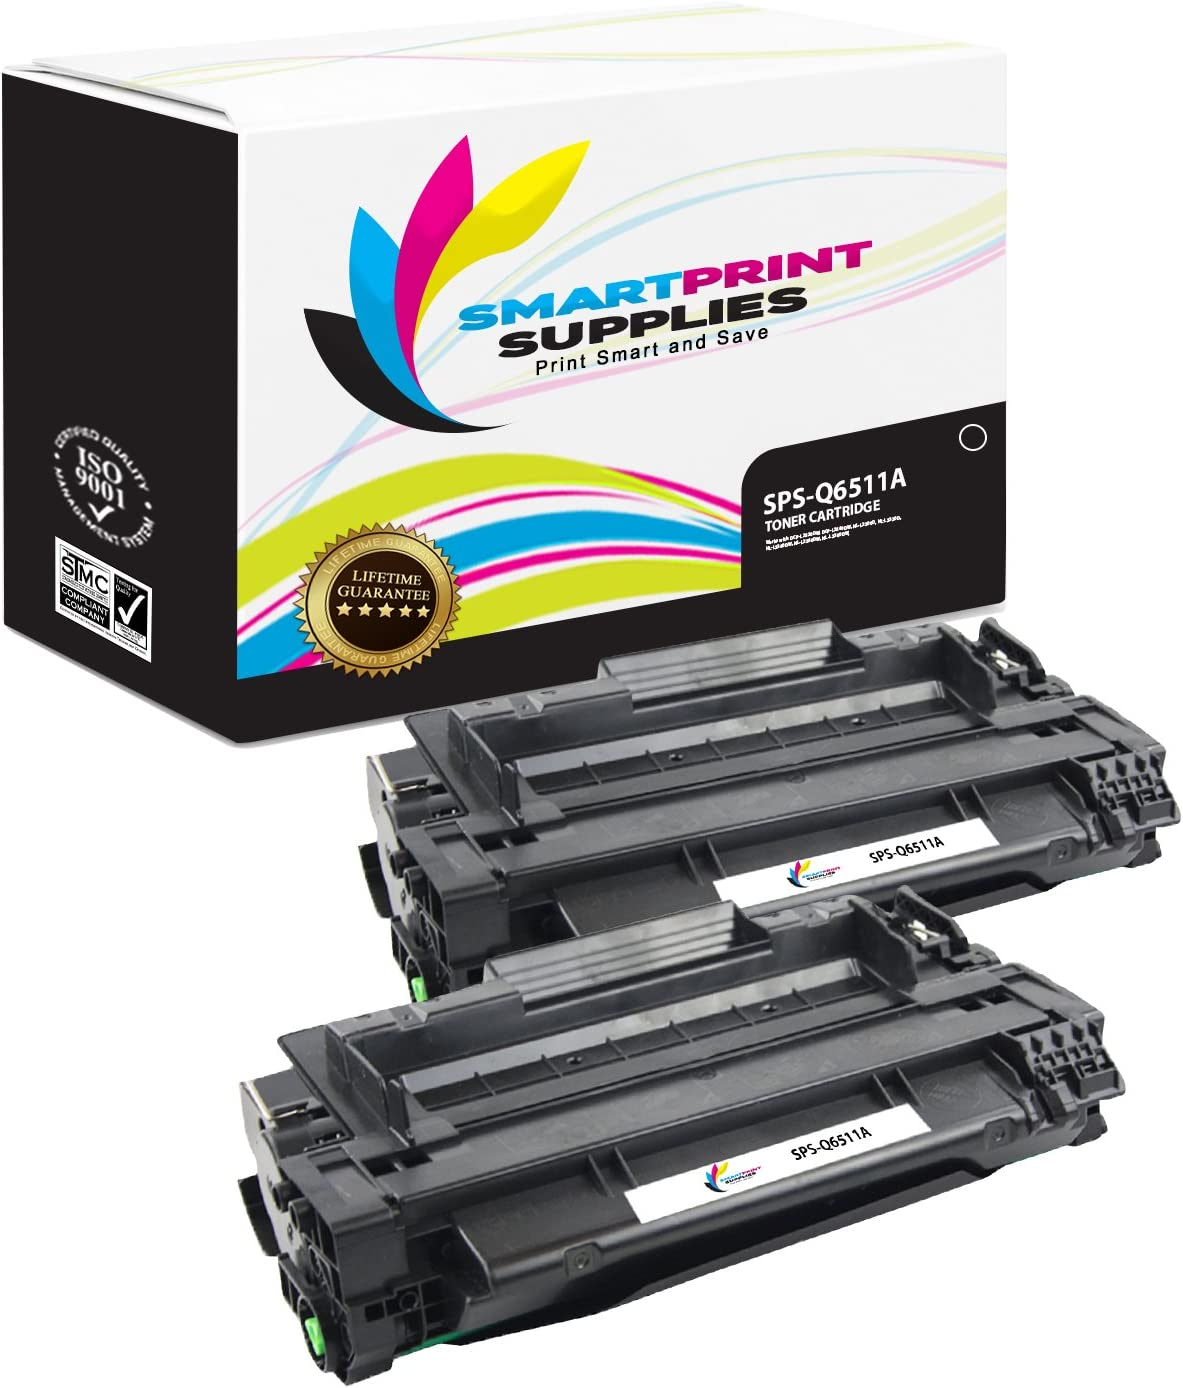 Smart Print Supplies Compatible 11A Q6511A Black Toner Cartridge Replacement for HP Laserjet 2400 2420 2430 Printers (6,000 Pages) - 2 Pack